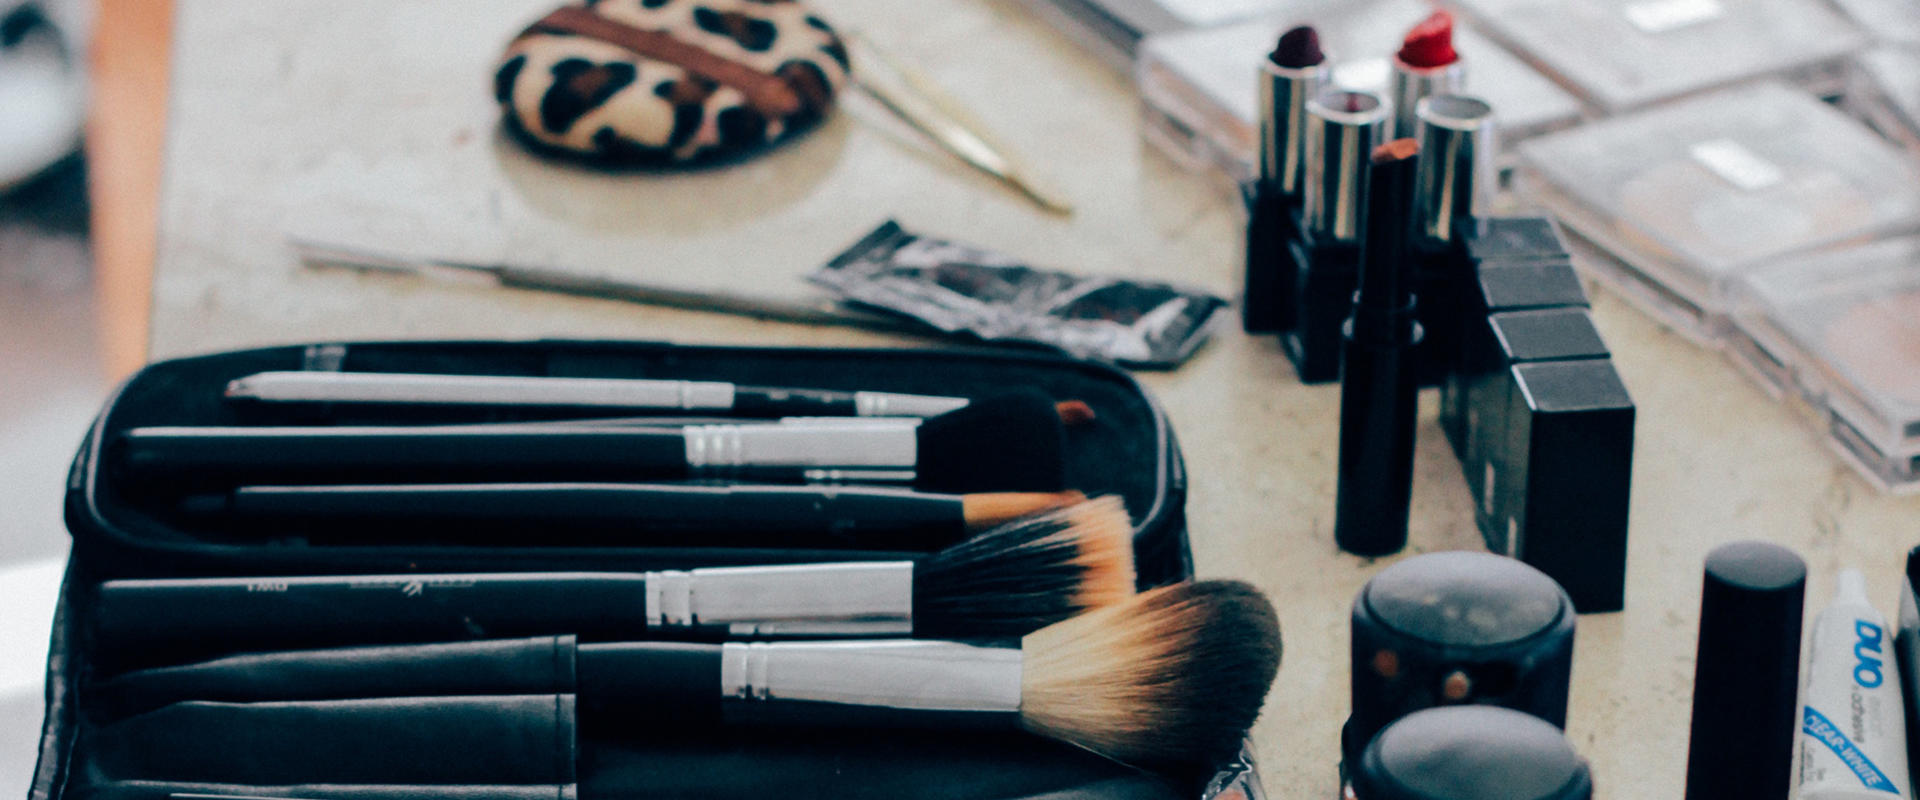 Everything You Need to Know About Sephora's 2019 Beauty Insider HolidaySale